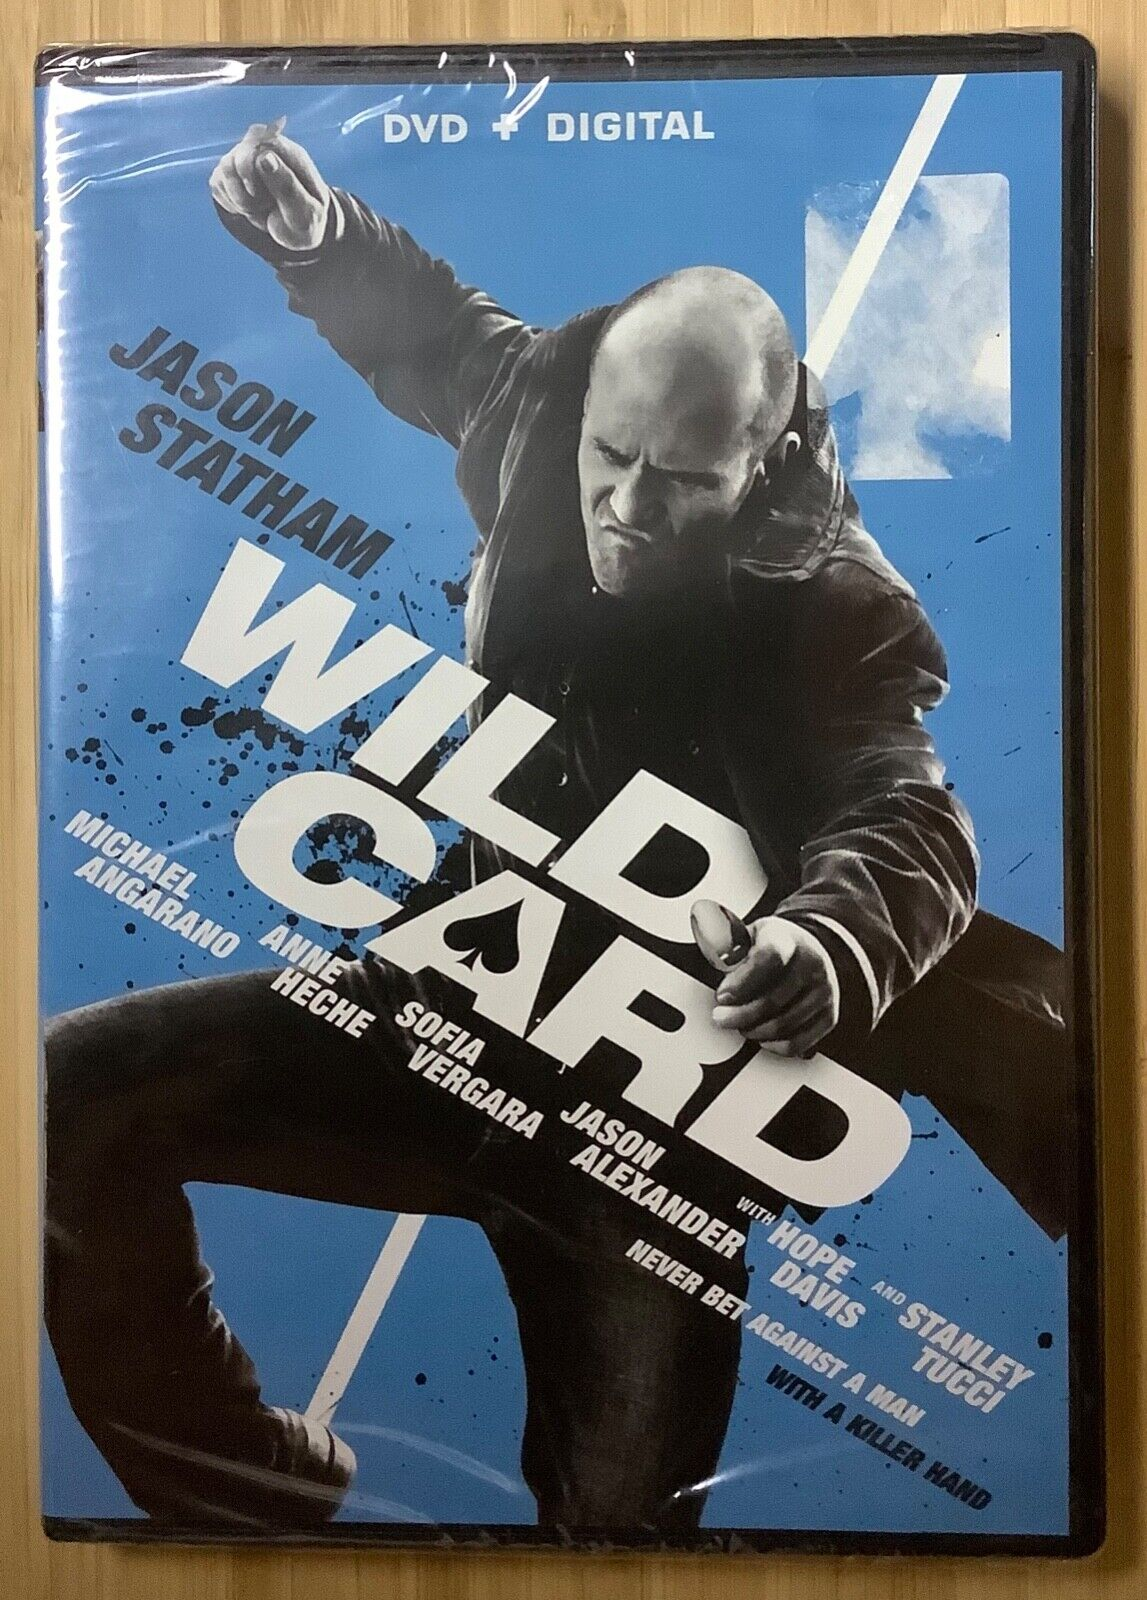 Wild Card 2014 DVD Jason Statham Michael Angarano Anne Heche Action NEW SEALED - $5.00